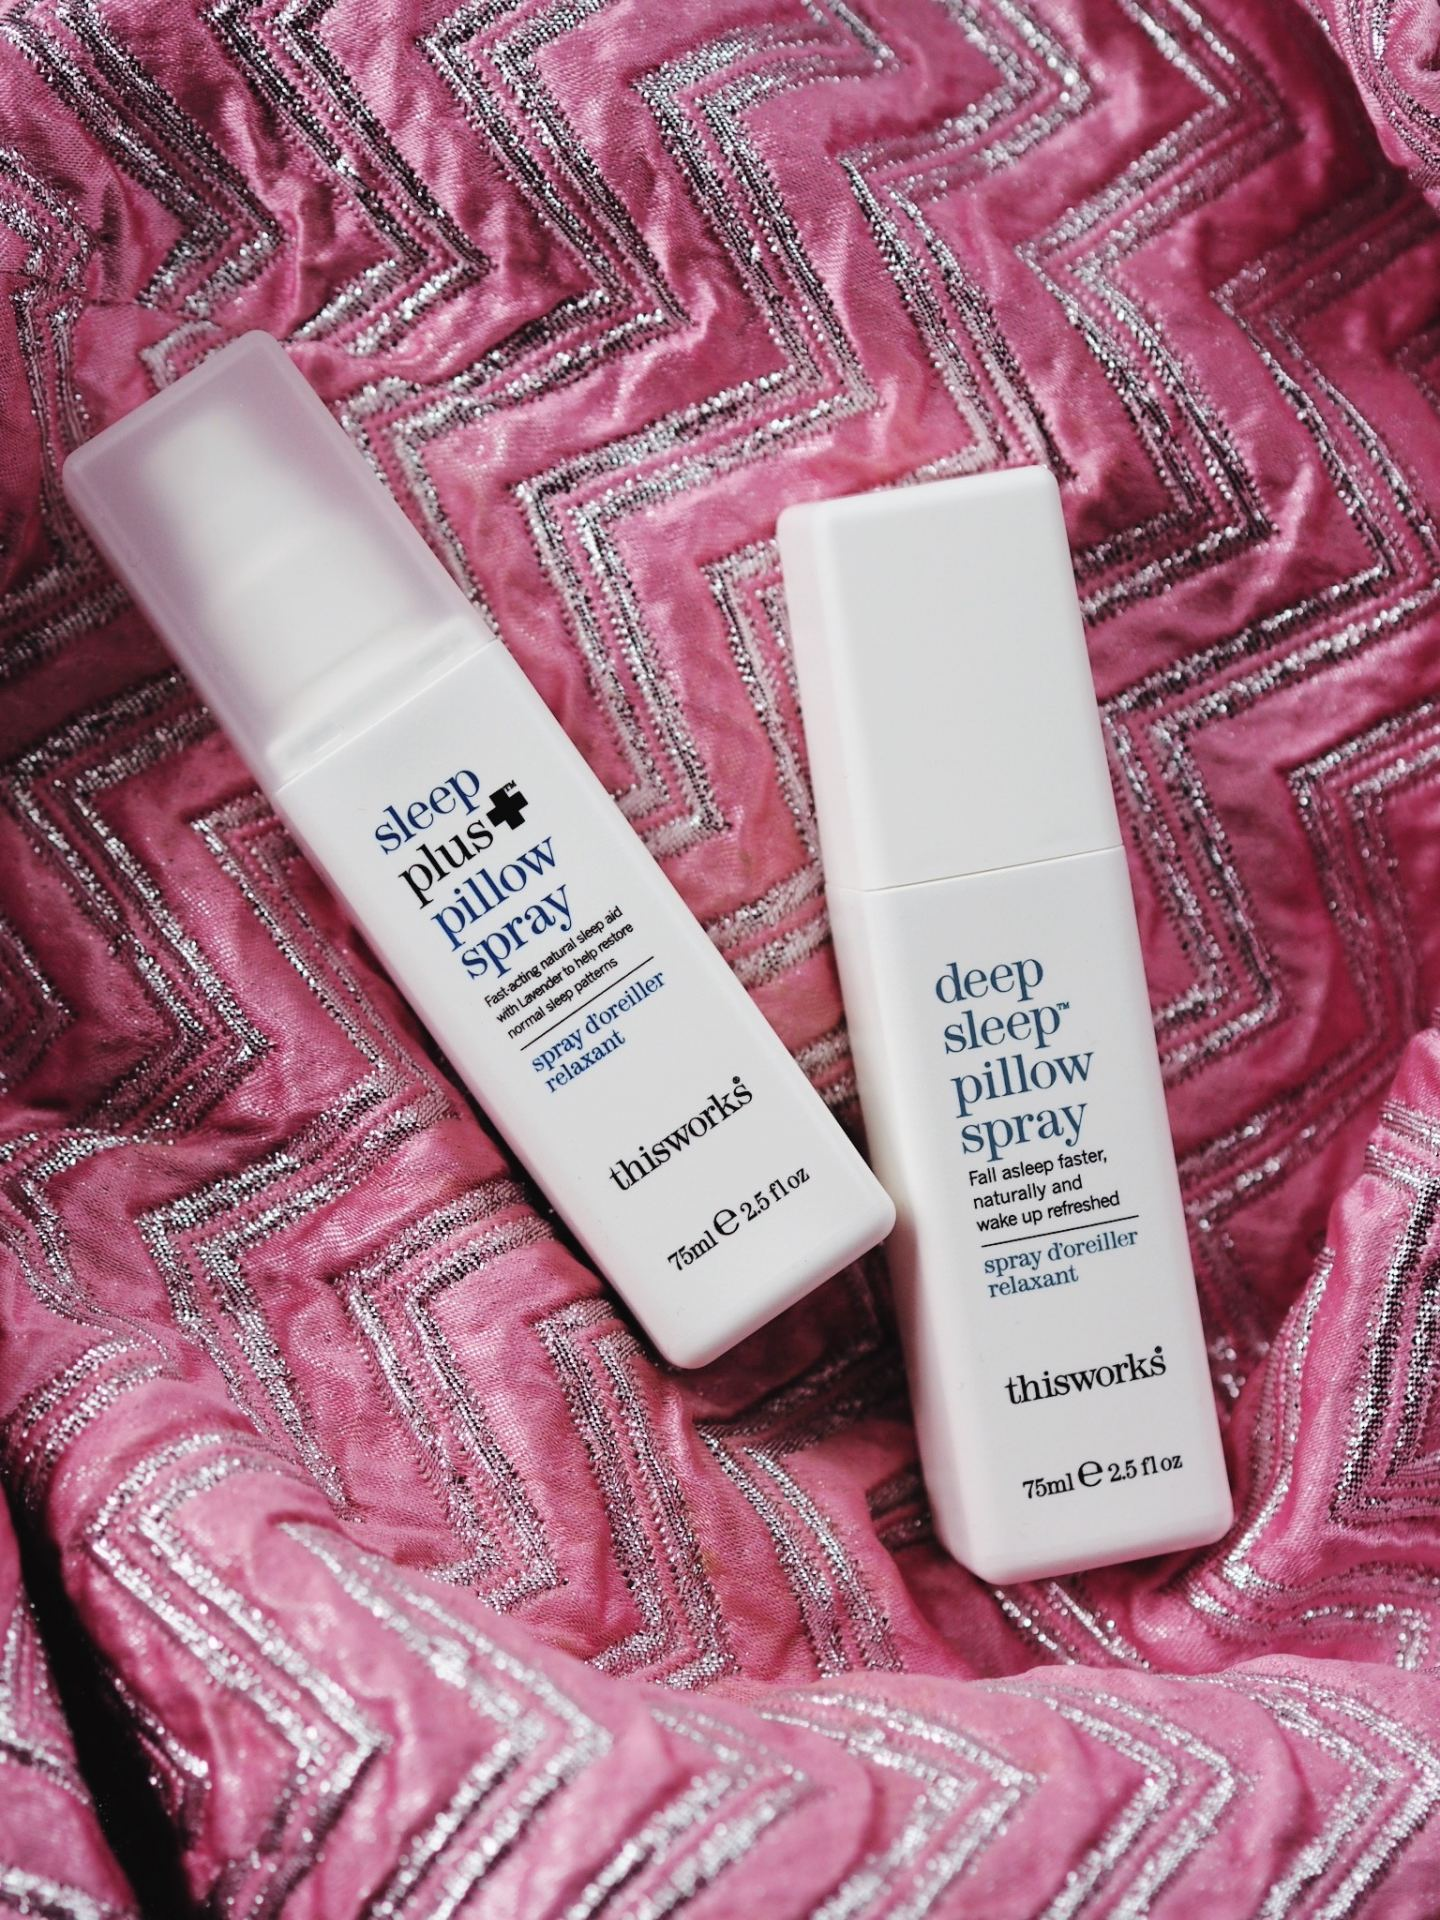 What's The Different Between This Works 'Deep Sleep' & 'Sleep Plus' Pillow Spray?